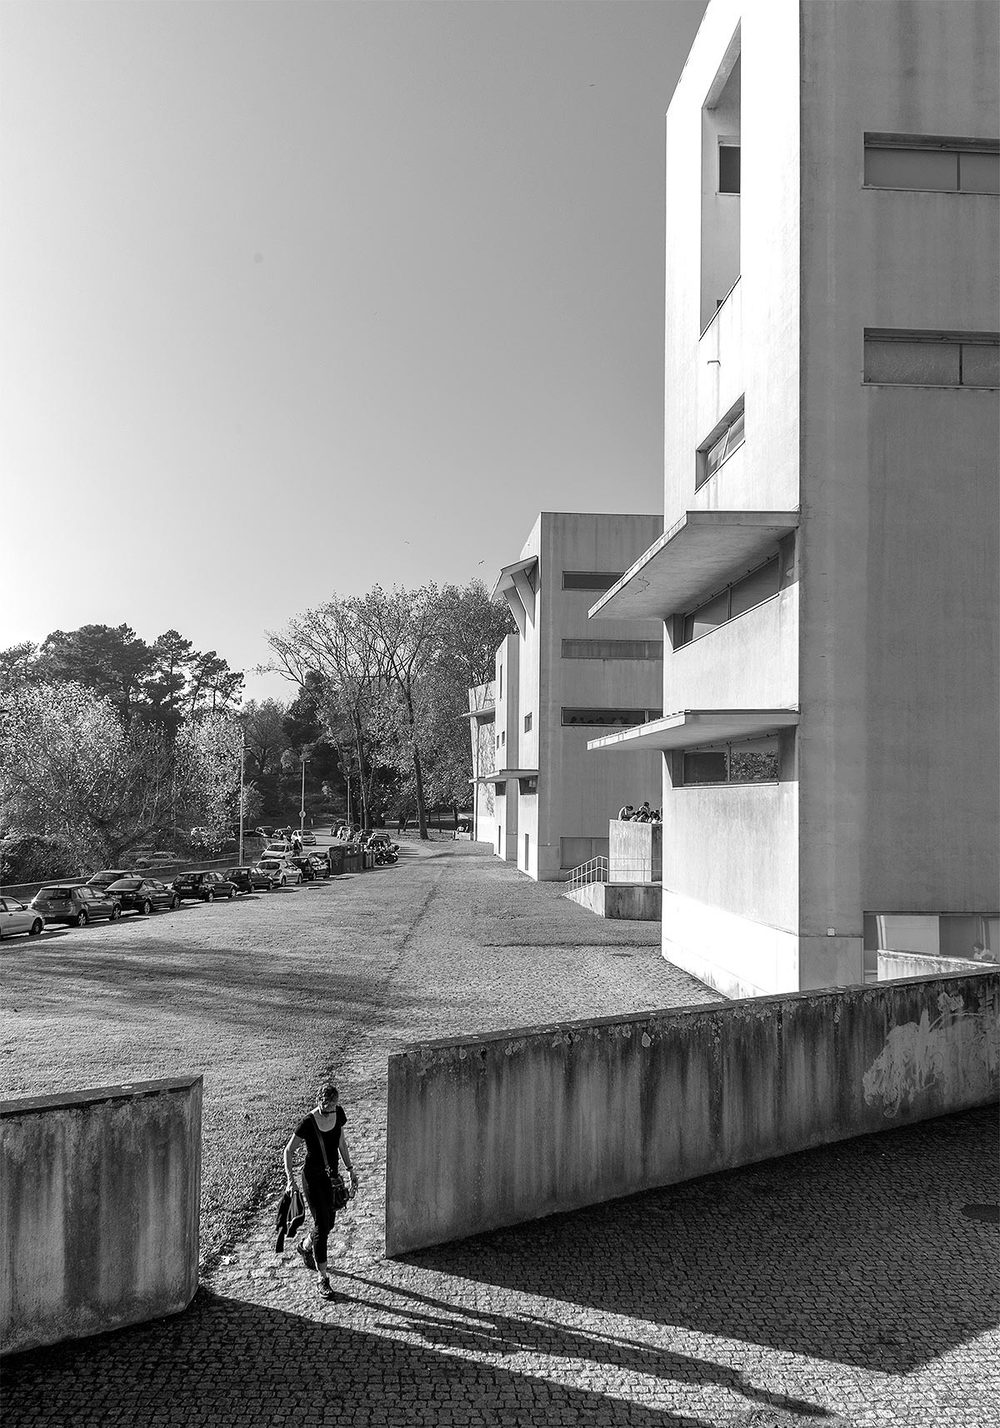 Faculty of Architecture, University of Porto, Porto, Portugal, Alvaro Siza, 1995